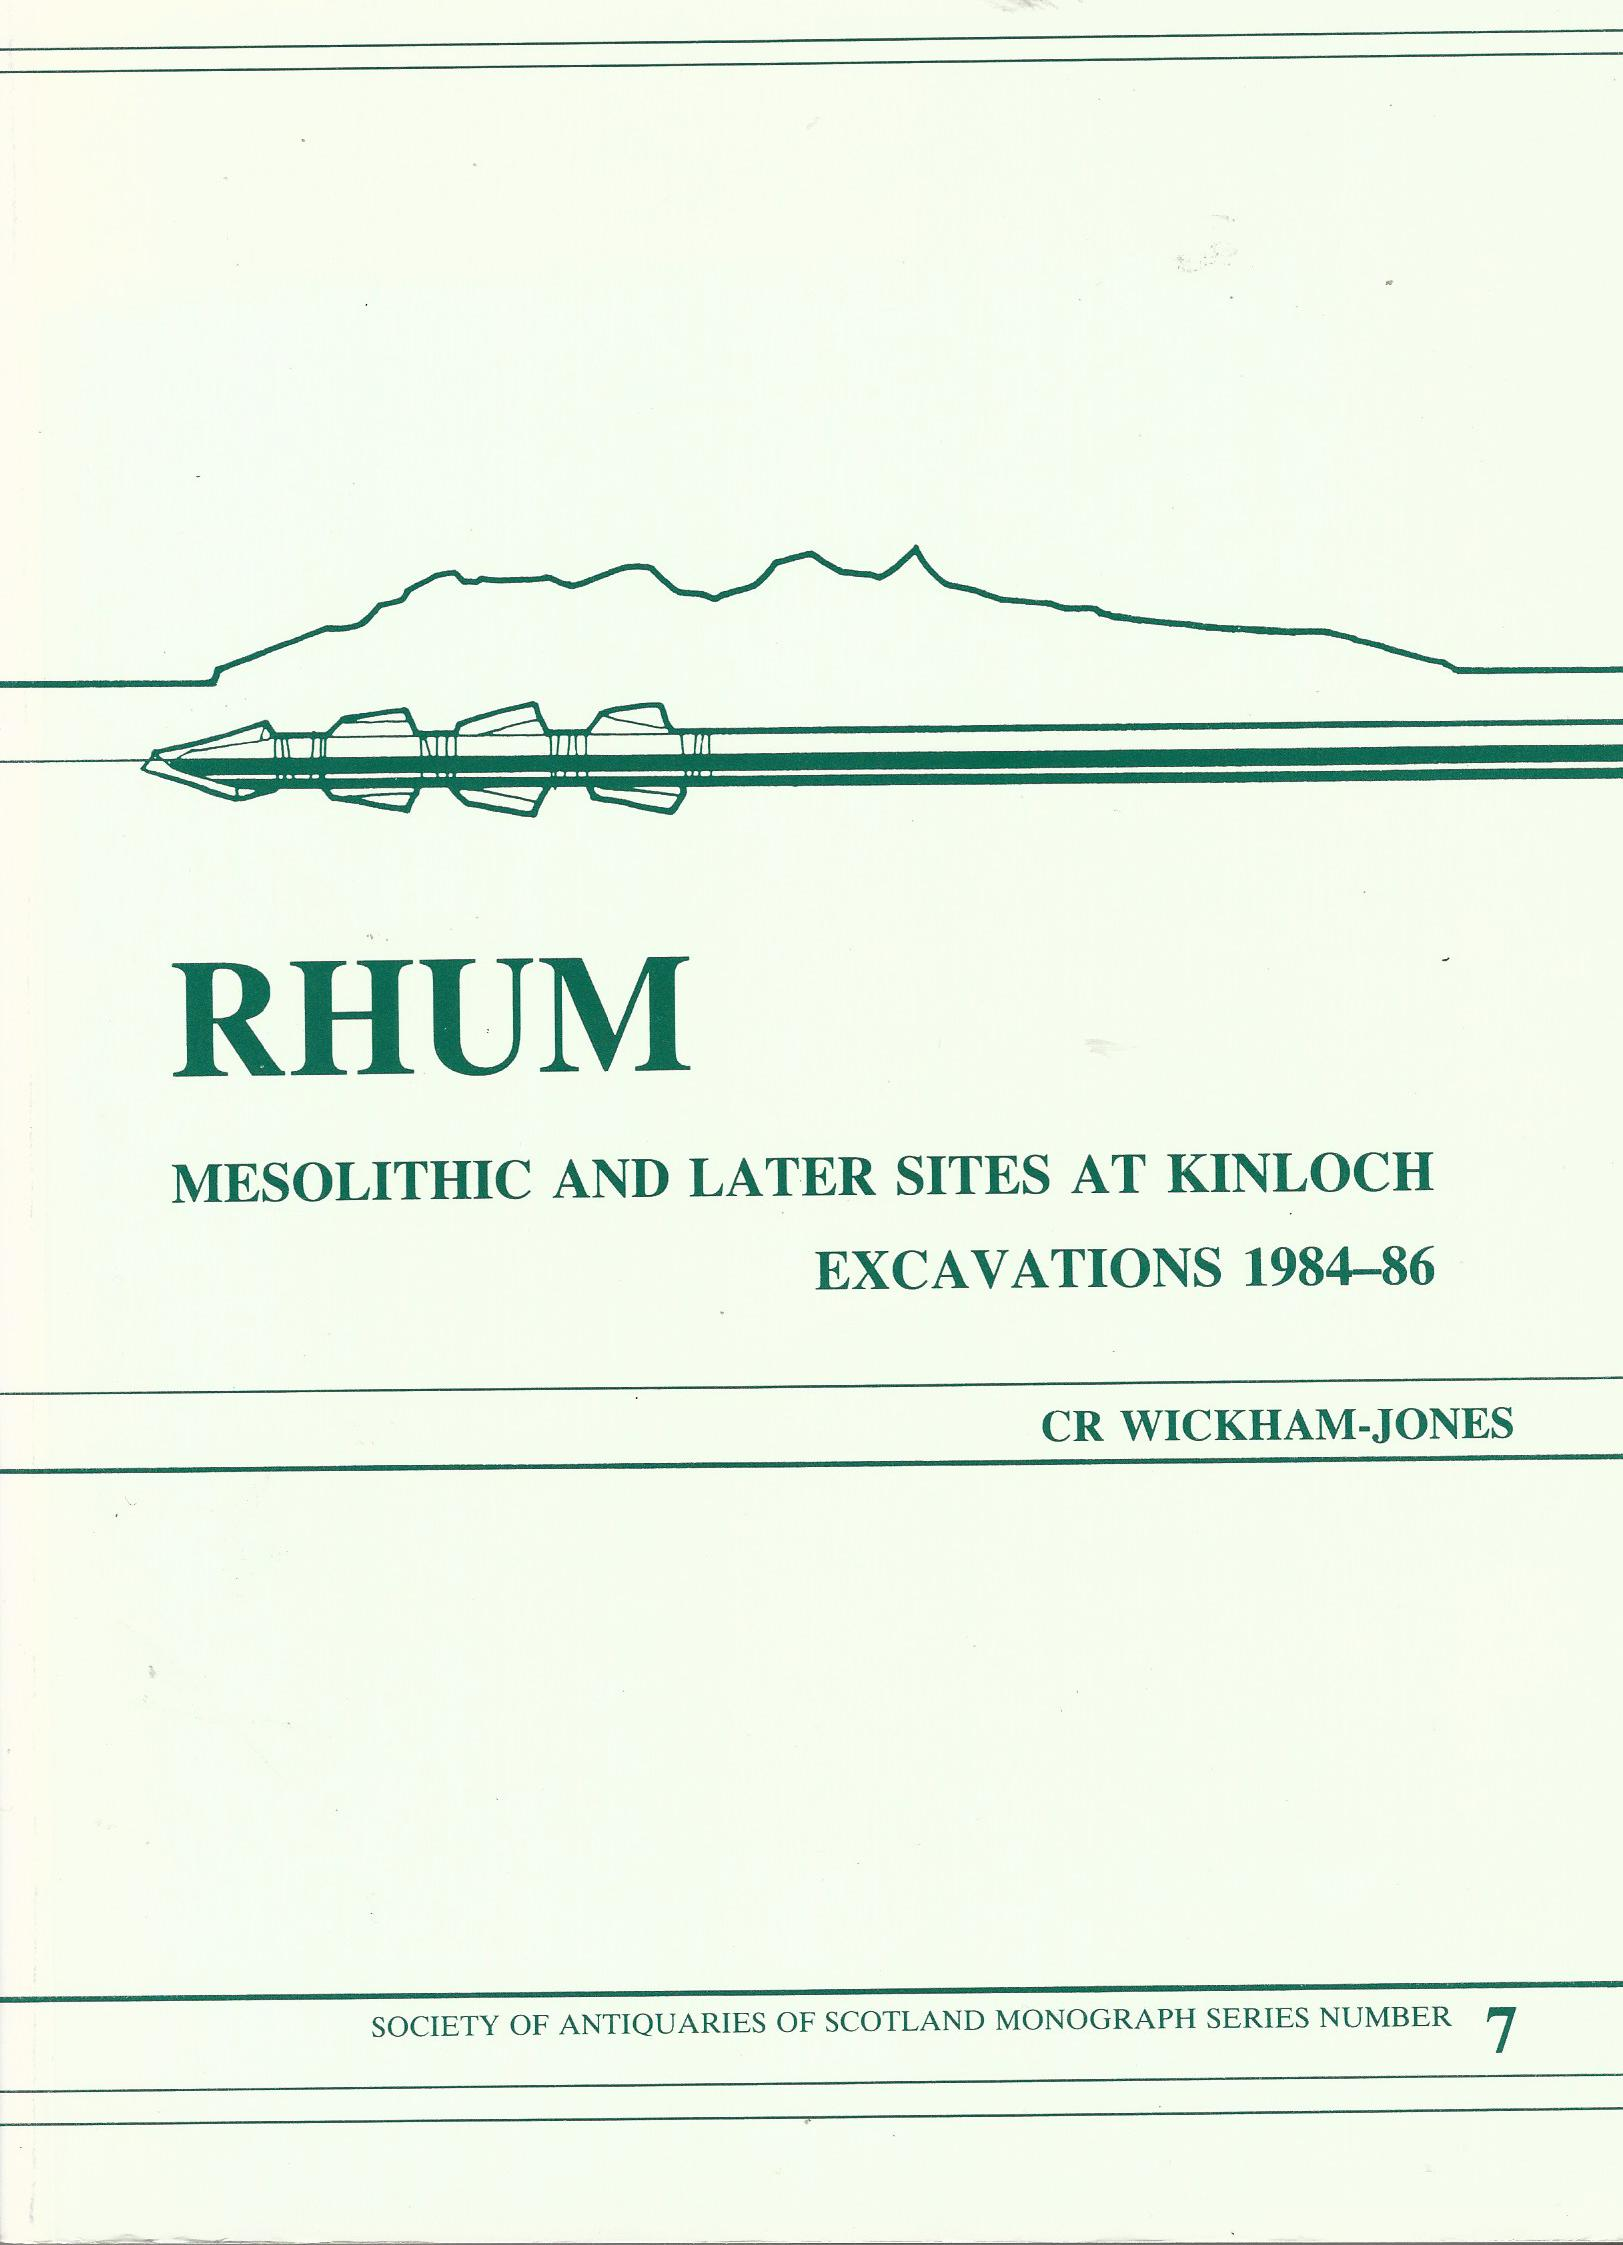 Image for Rhum, Mesolithic and Later Sites at Kinloch, Excavations 1984-1986. Society of Antiquaries of Scotland monograph series Number 7.